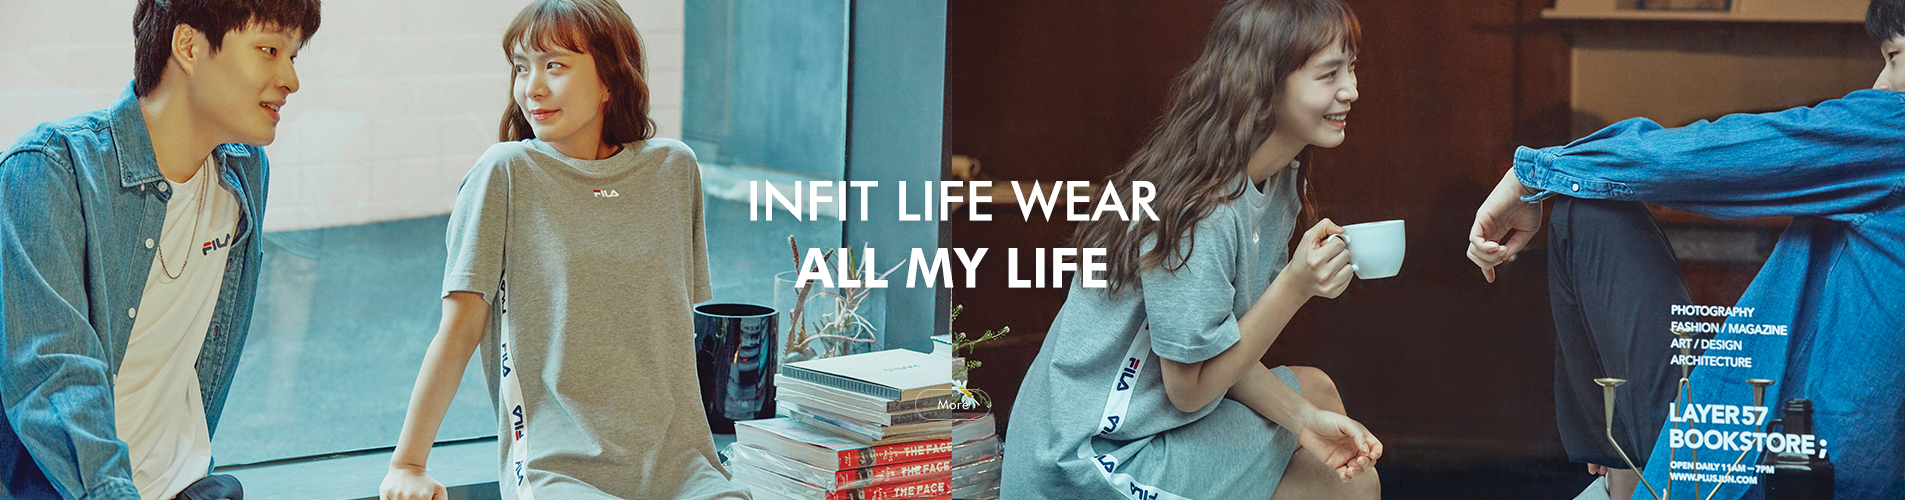 INFIT LIFE WEAR ALL MY LIFE